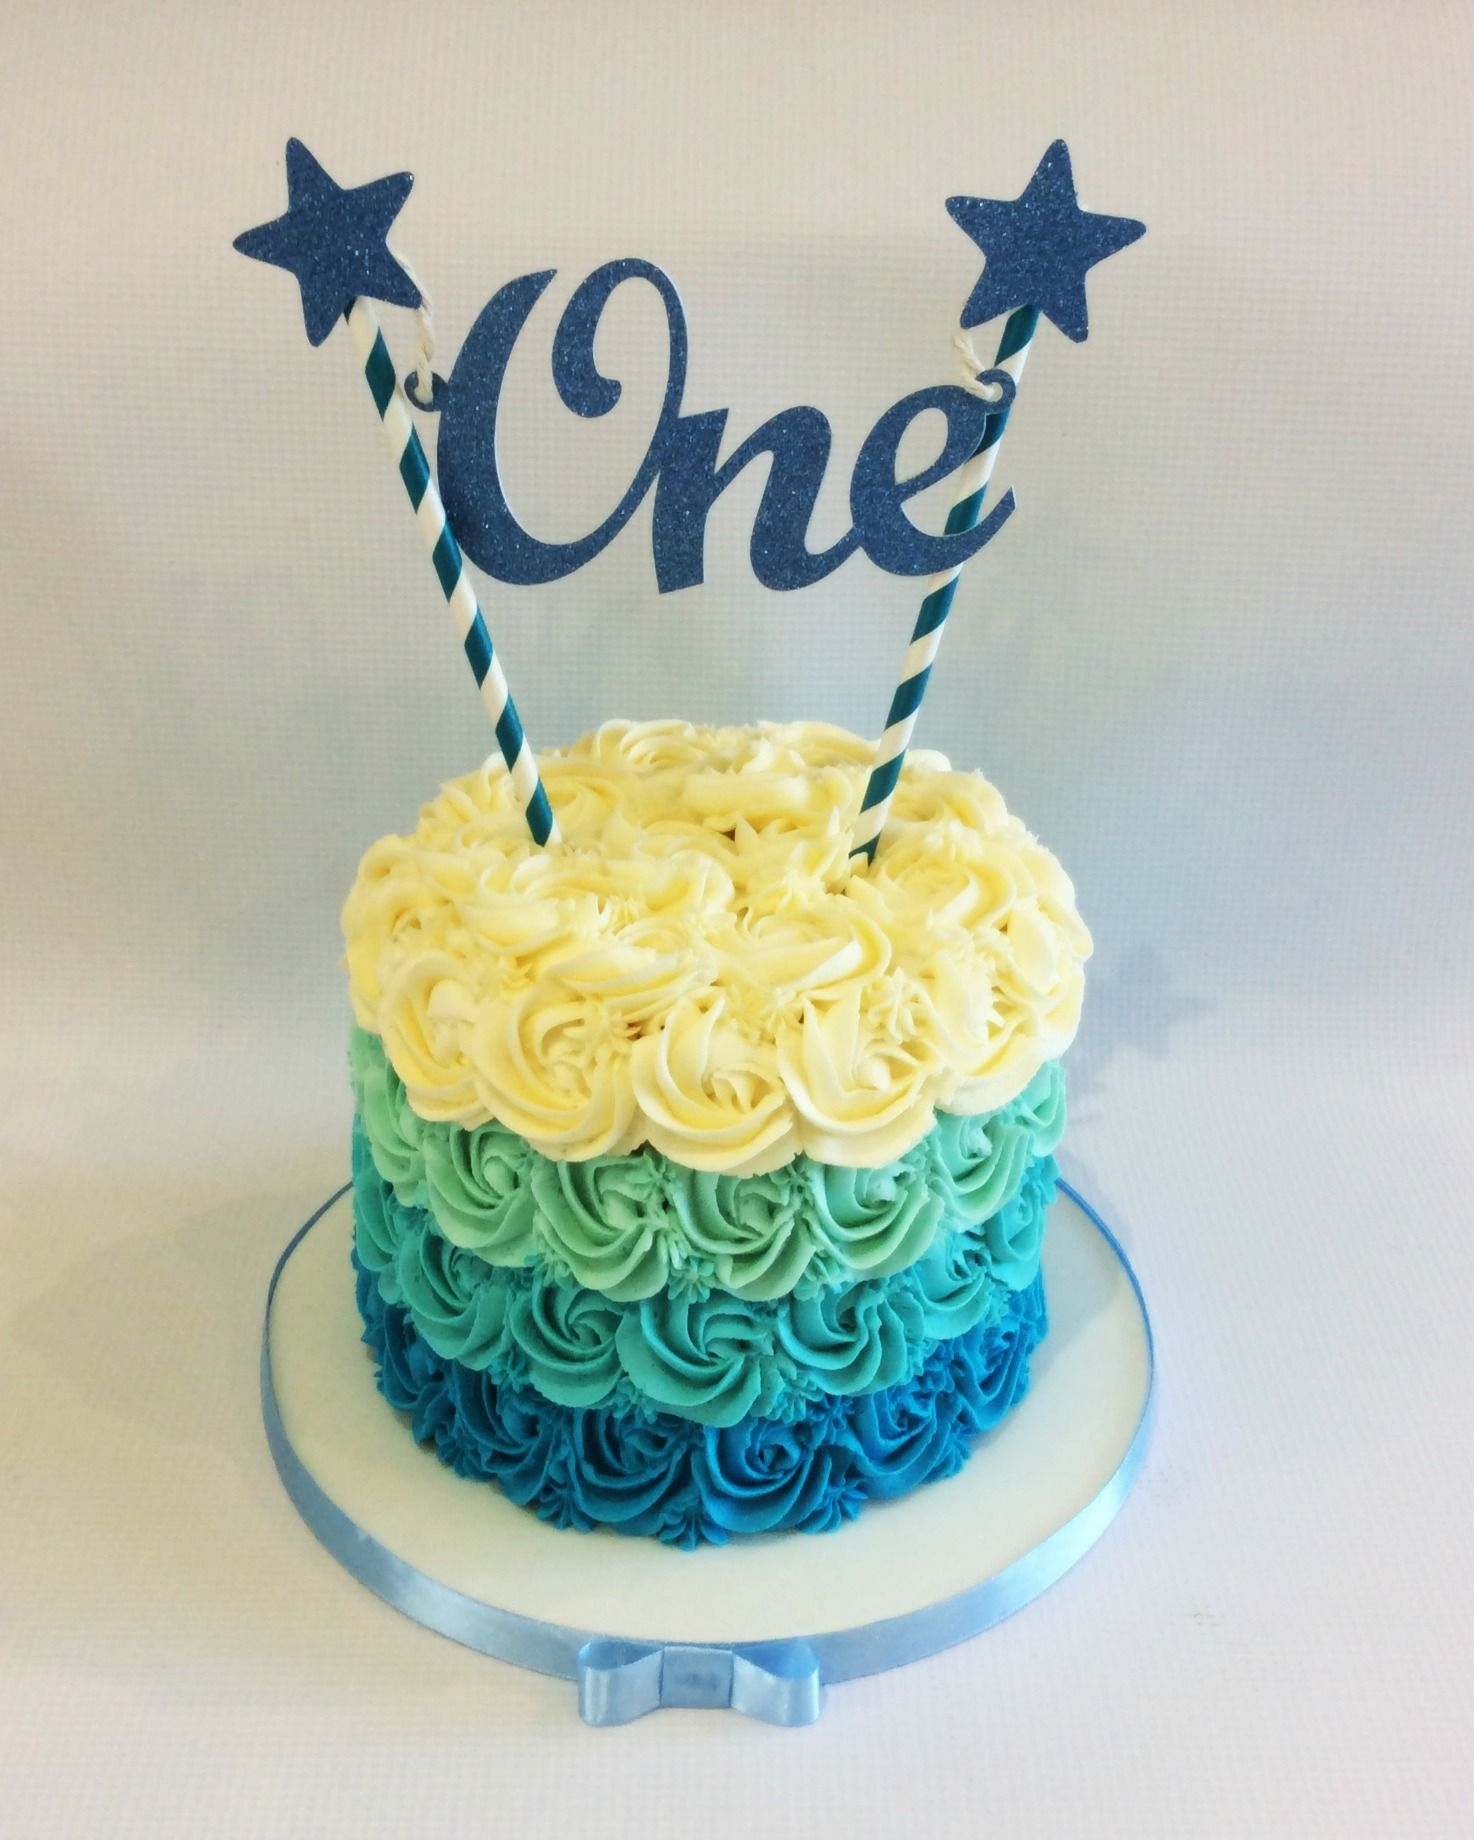 Admirable First Birthday Cake Images For Boy The Cake Boutique Personalised Birthday Cards Veneteletsinfo